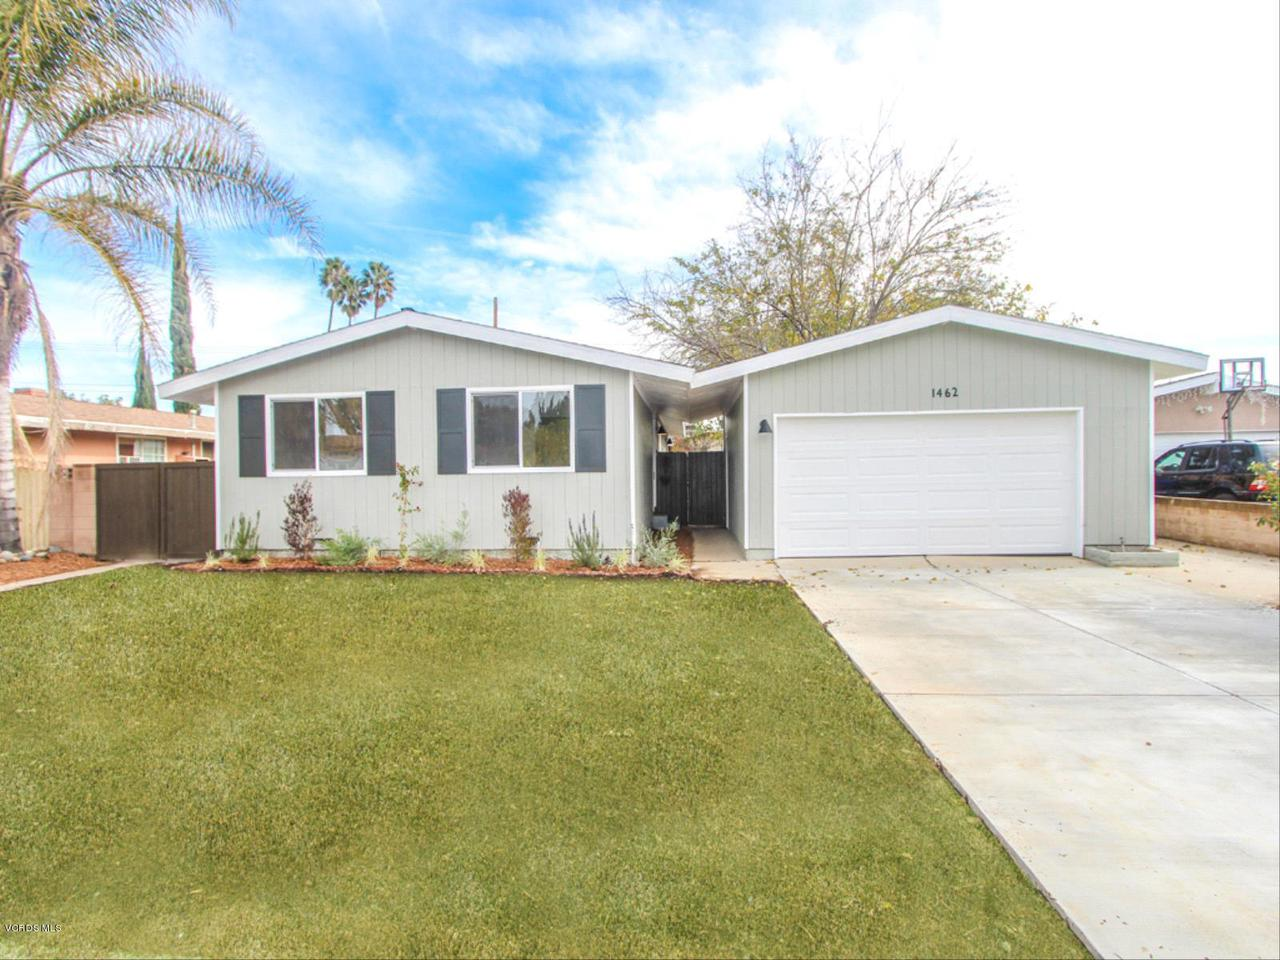 1462 4TH, Simi Valley, CA 93065 - 1.   4th_Front